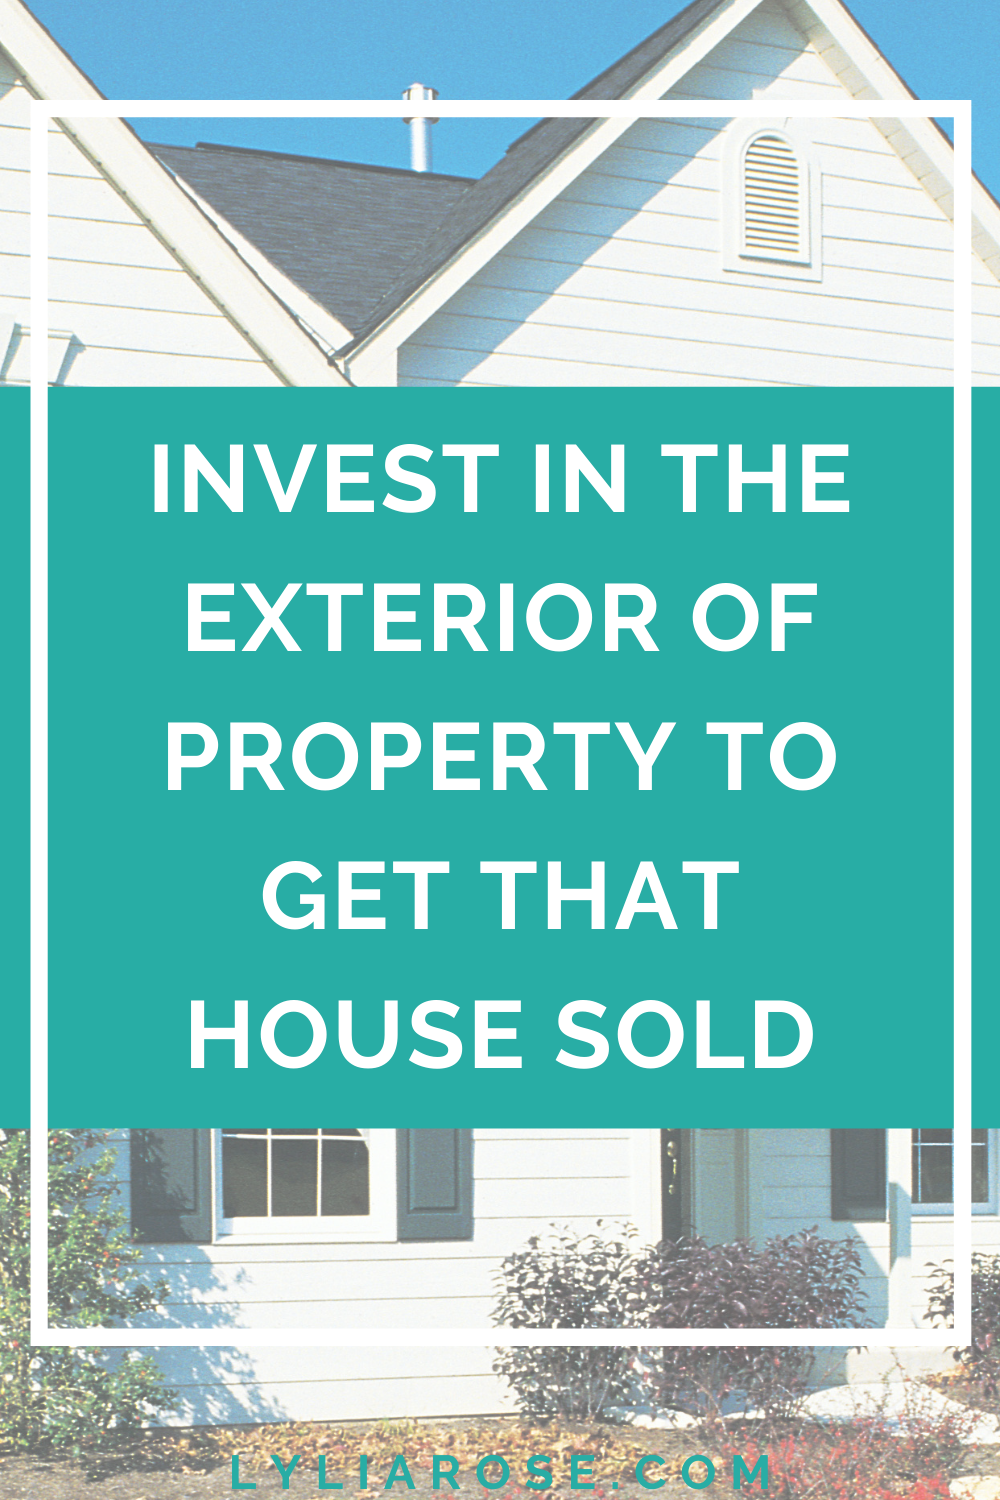 Invest in the exterior of property to get that house sold (1)